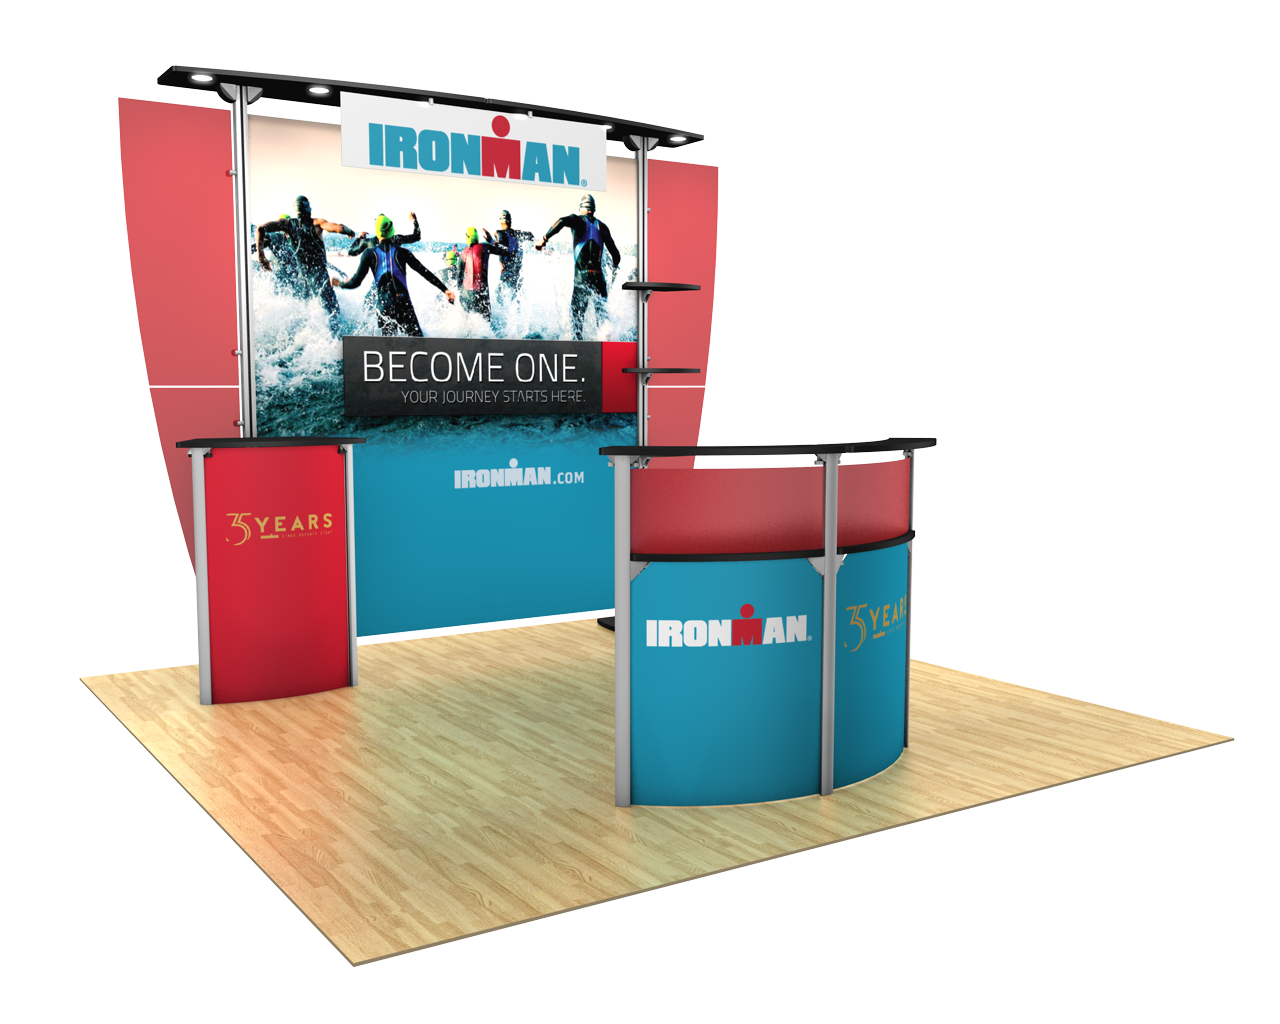 Exhibitline 10ft Trade Show Display Kit - 10.03